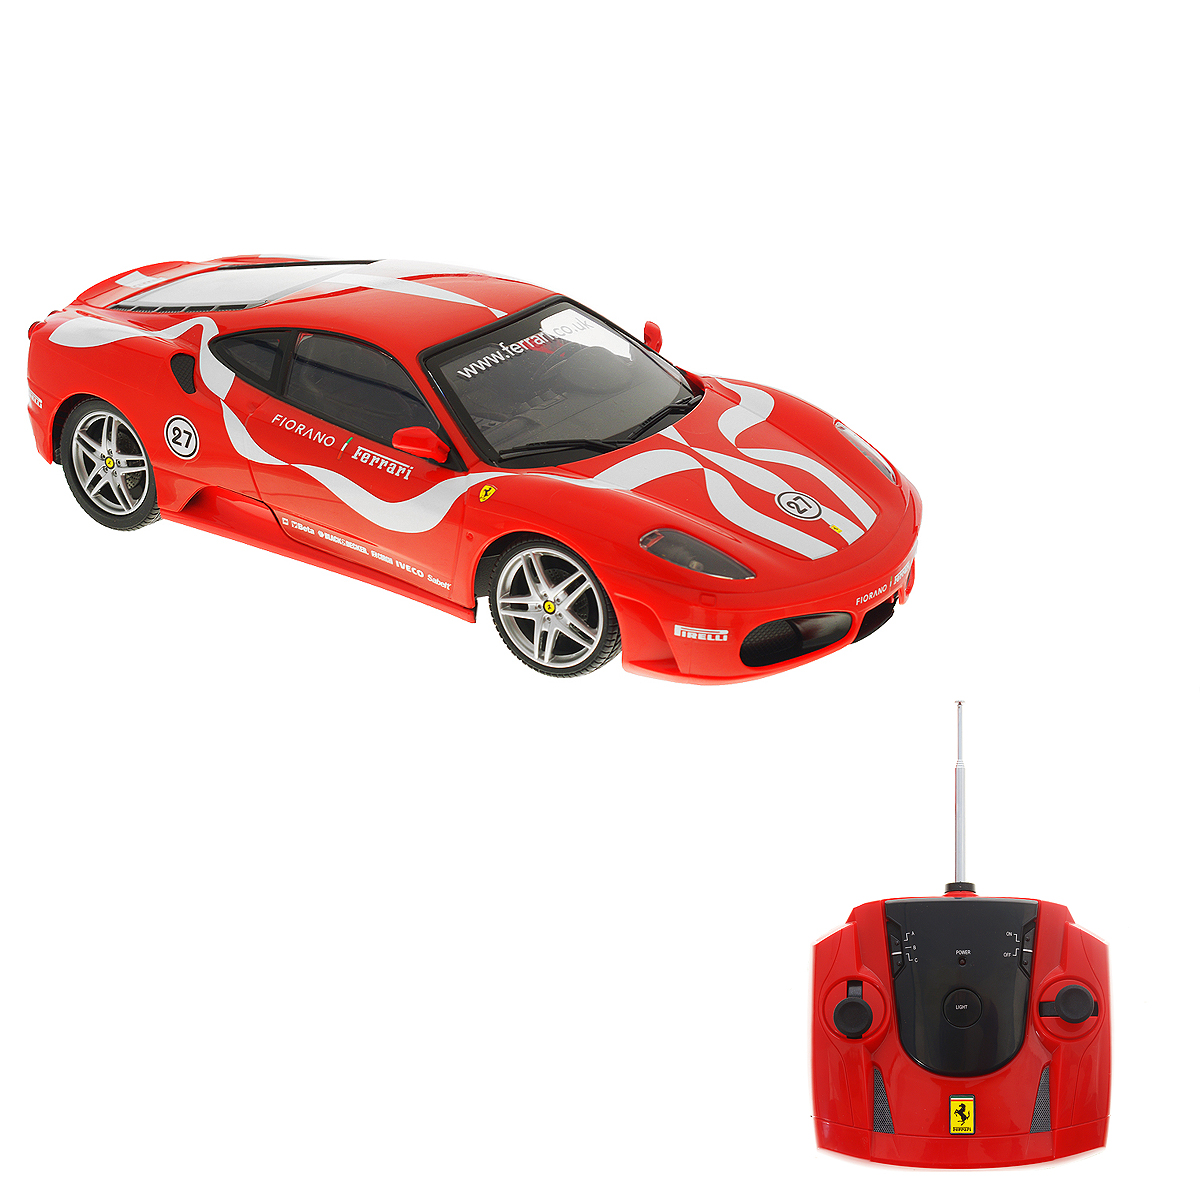 Радиоуправляемая модель Silverlit Ferrari Fiorano, цвет: красный. Масштаб 1/16 free shipping brand new 7 color recording video door phone intercom 4 monitors 1 outdoor door camera for 3 family wholesale